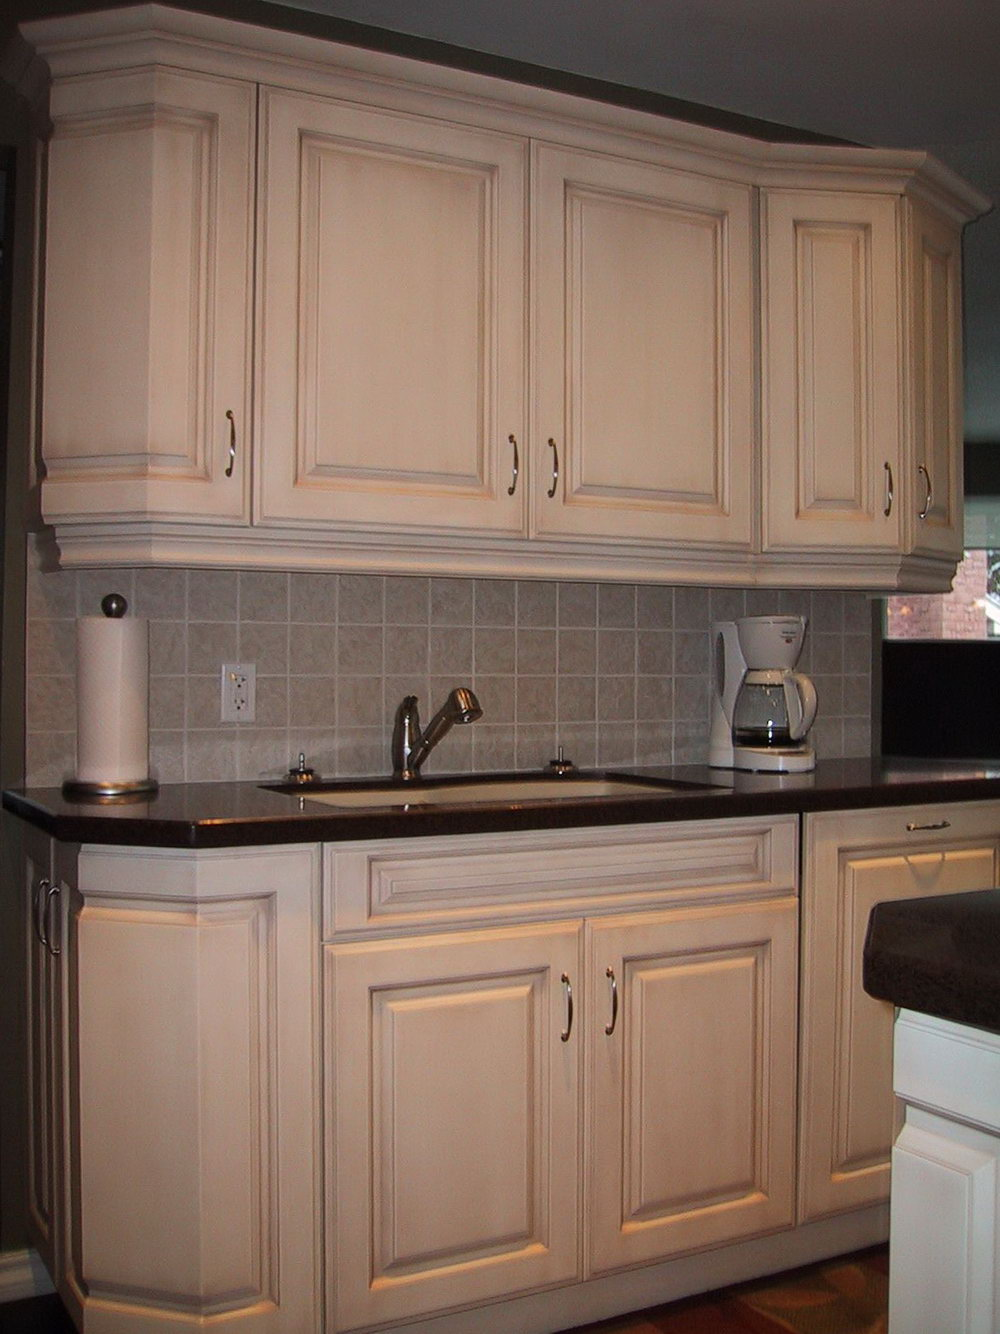 Replacement Kitchen Cabinet Doors Ireland